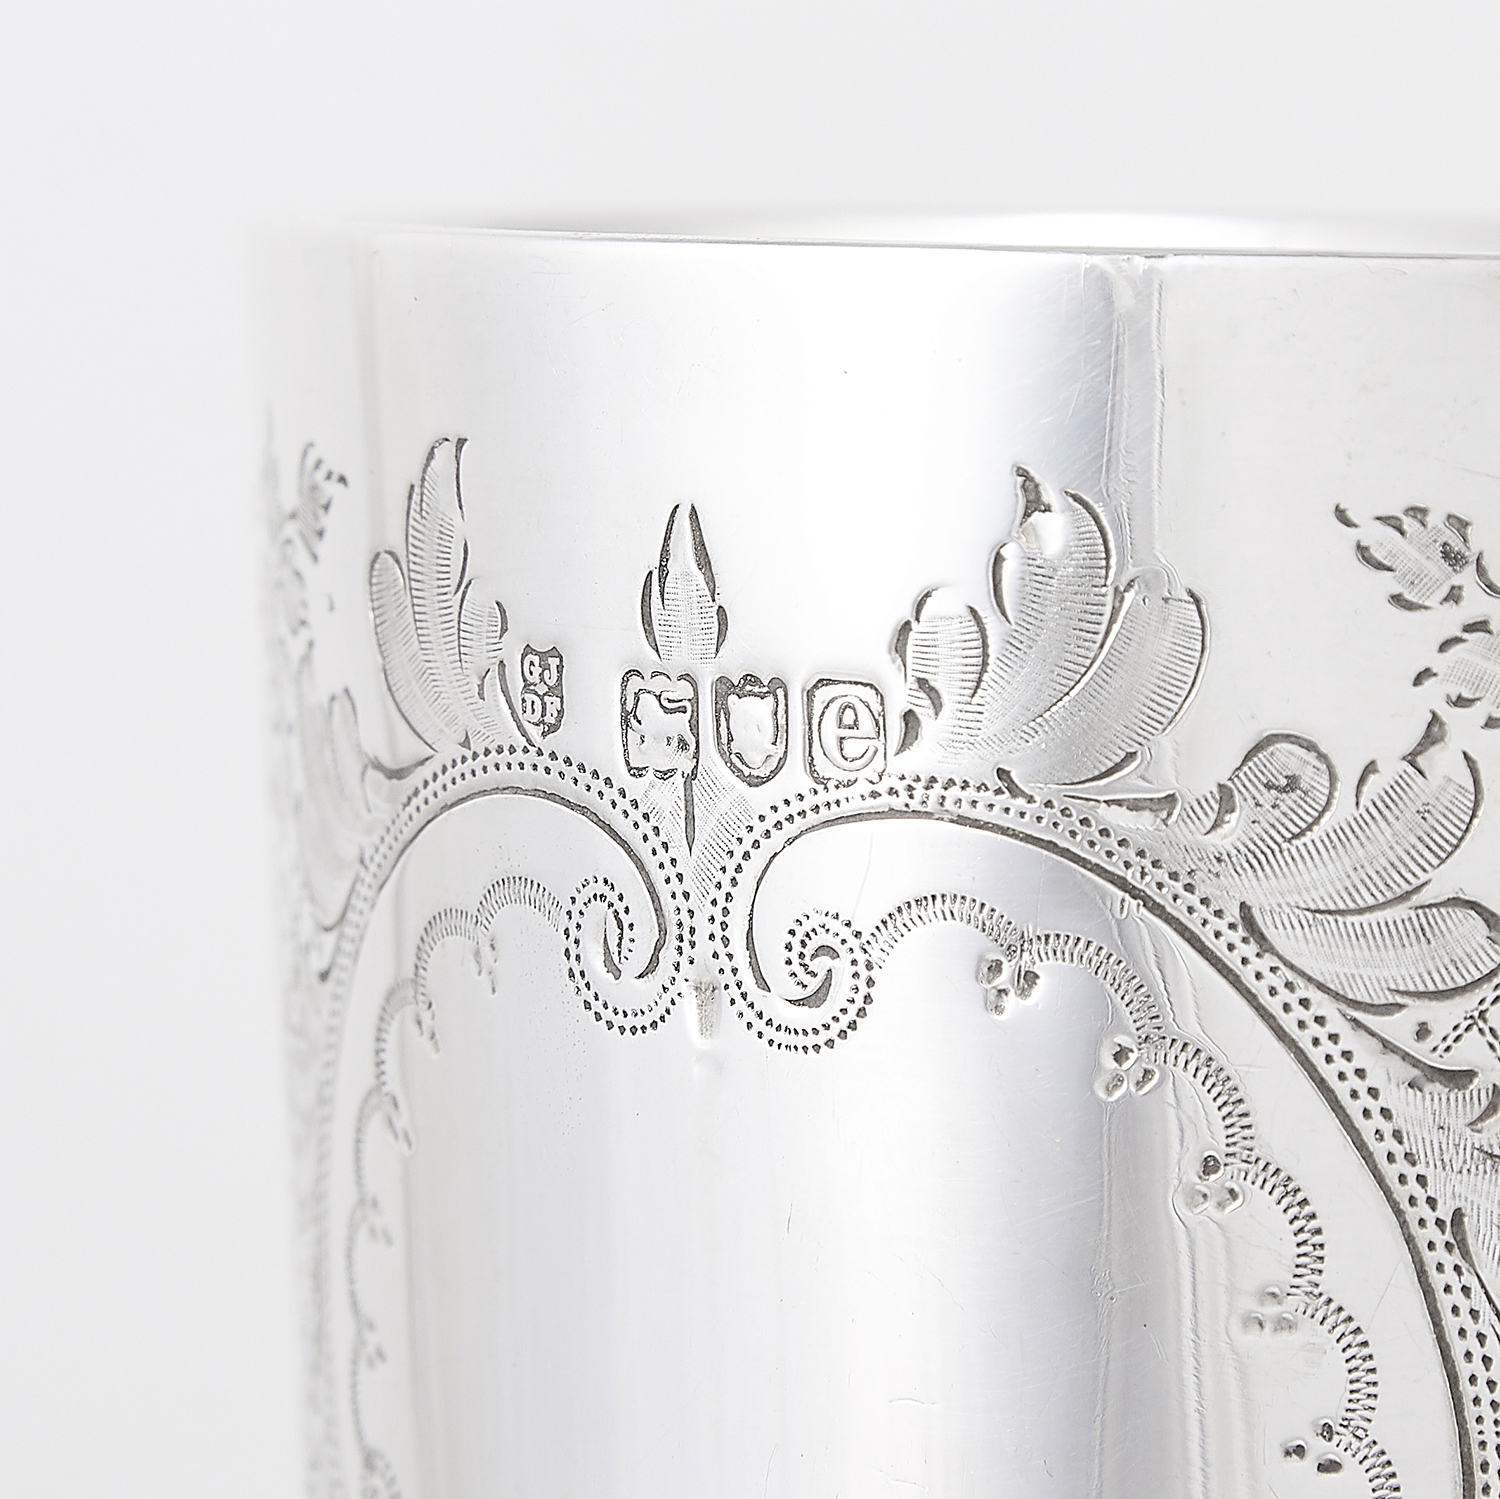 ANTIQUE VICTORIAN STERLING SILVER GOBLET, JACKSON FULLERTON, LONDON 1900 the rounded body with - Image 3 of 3